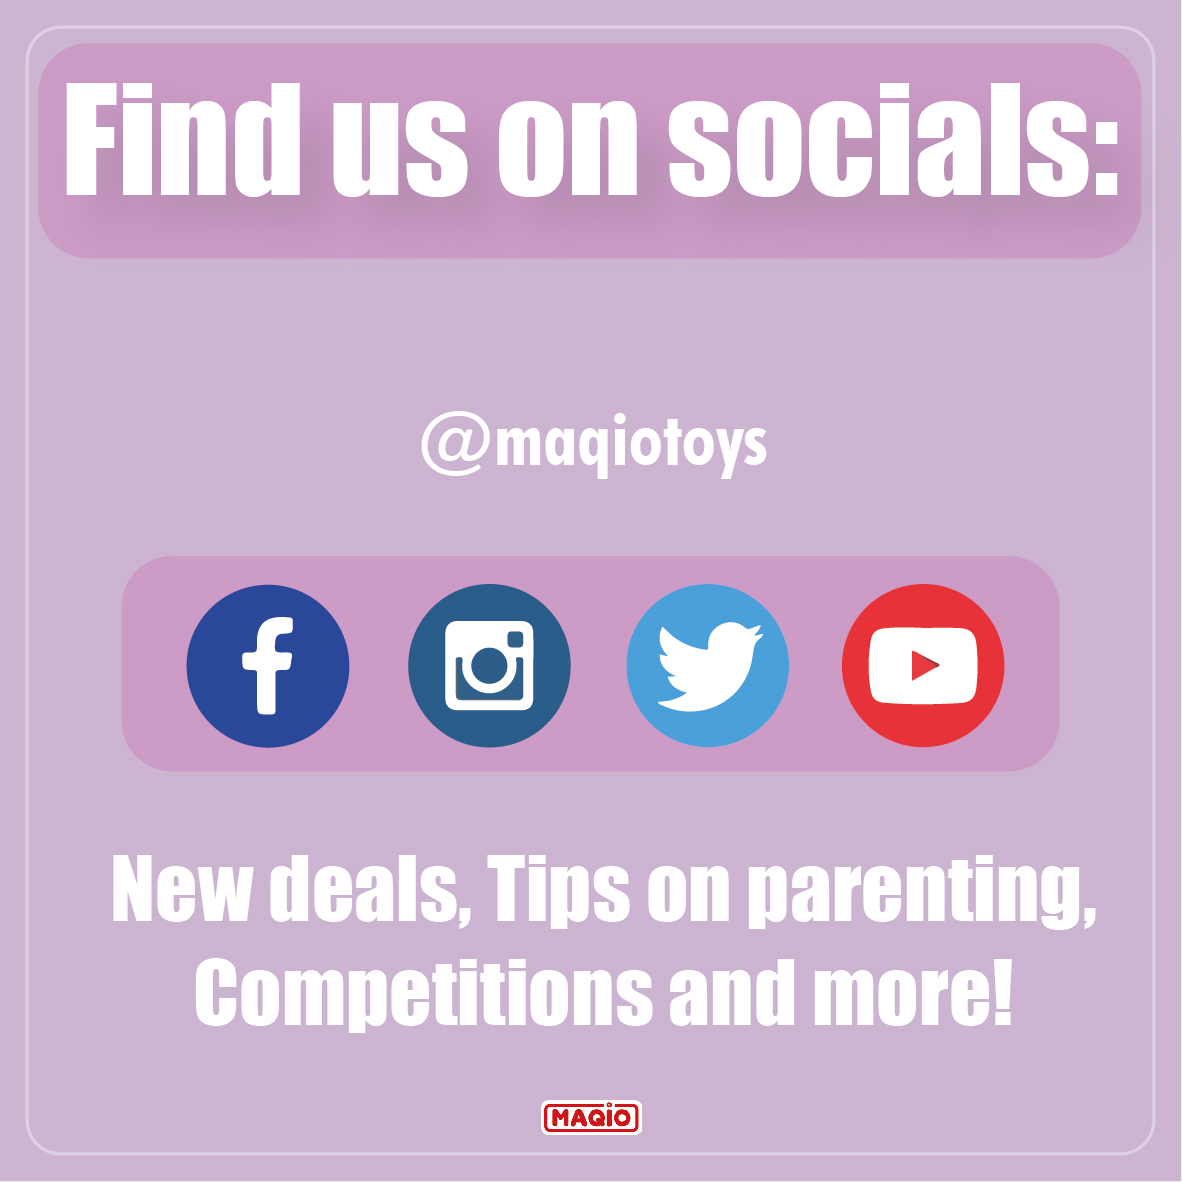 Remember: Follow us on all our social media channels to stay updated about new deals, tips on parenting and more!😊  #parenting #newdeals #bargain #socials #competitions #maqiotoys  #bargaintoys #toys #sale #parenting #kids #mum #backtoschool #lowprices #storage #clearpay